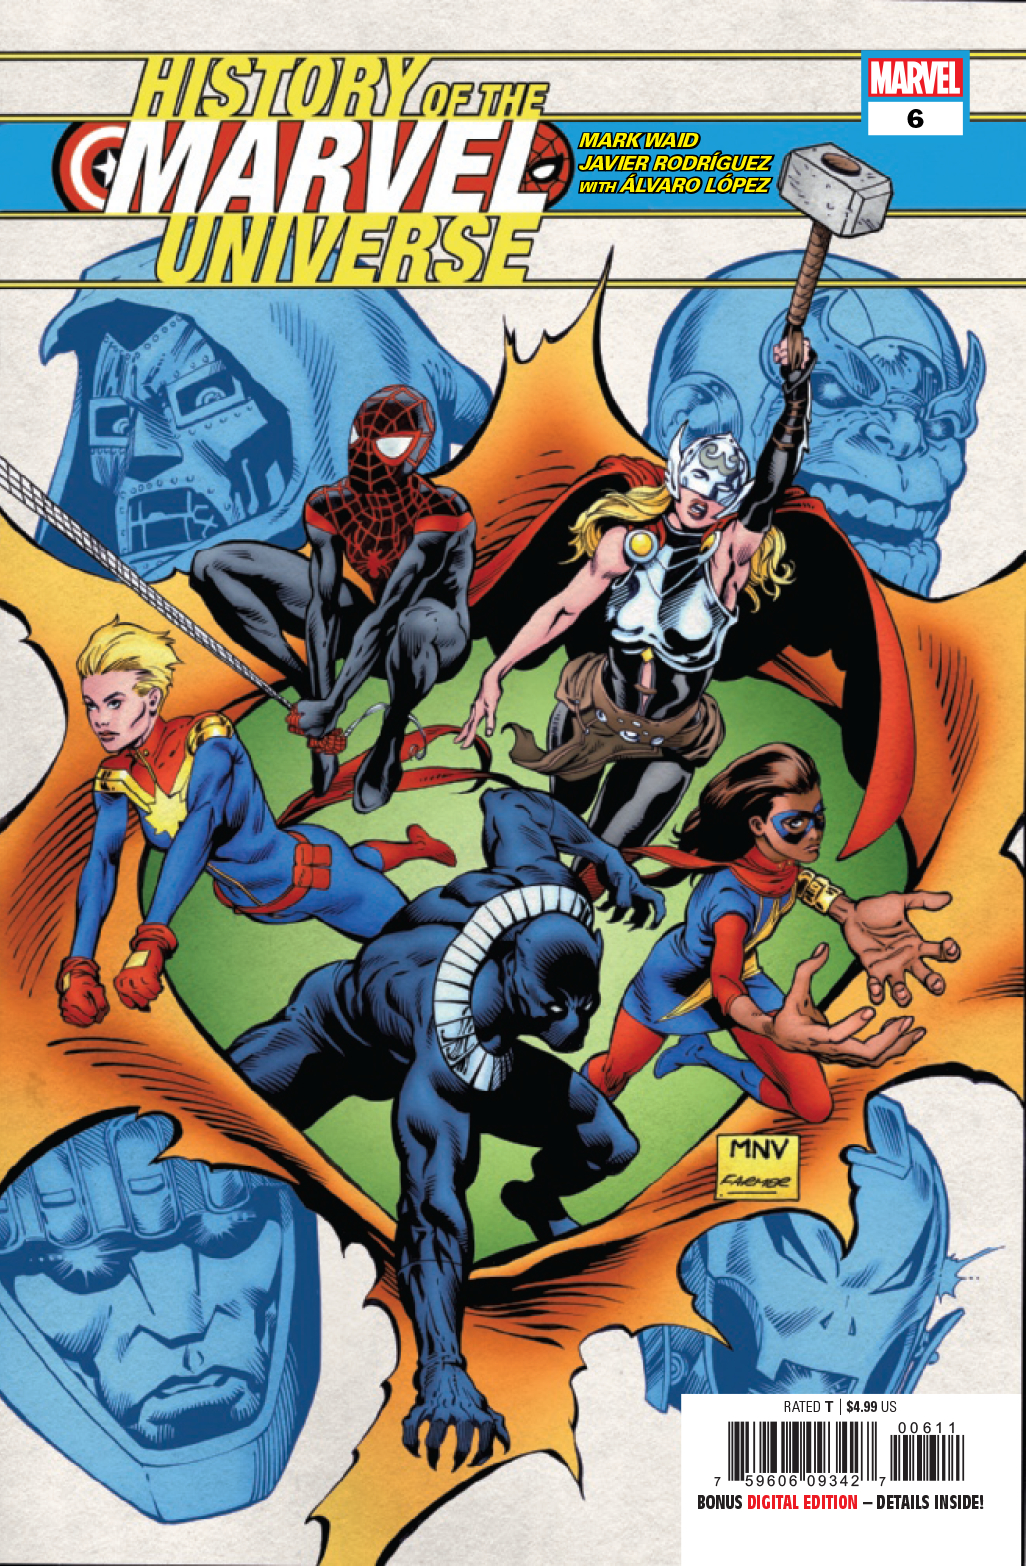 HISTORY OF MARVEL UNIVERSE #6 (OF 6)